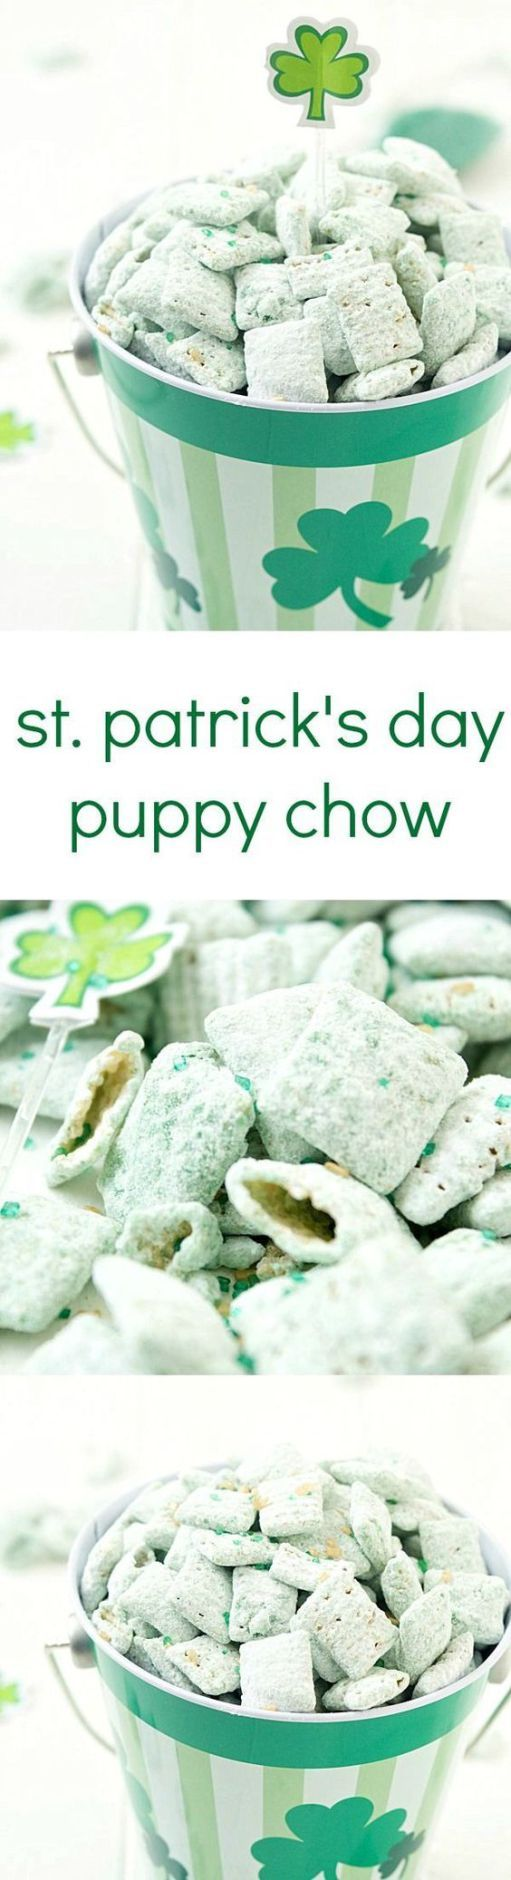 St. Patrick's Day Puppy Chow Recipe via Gal on a Mission - The perfect green and minty snack! Beware, it's highly addictive and you will not be able to stop!